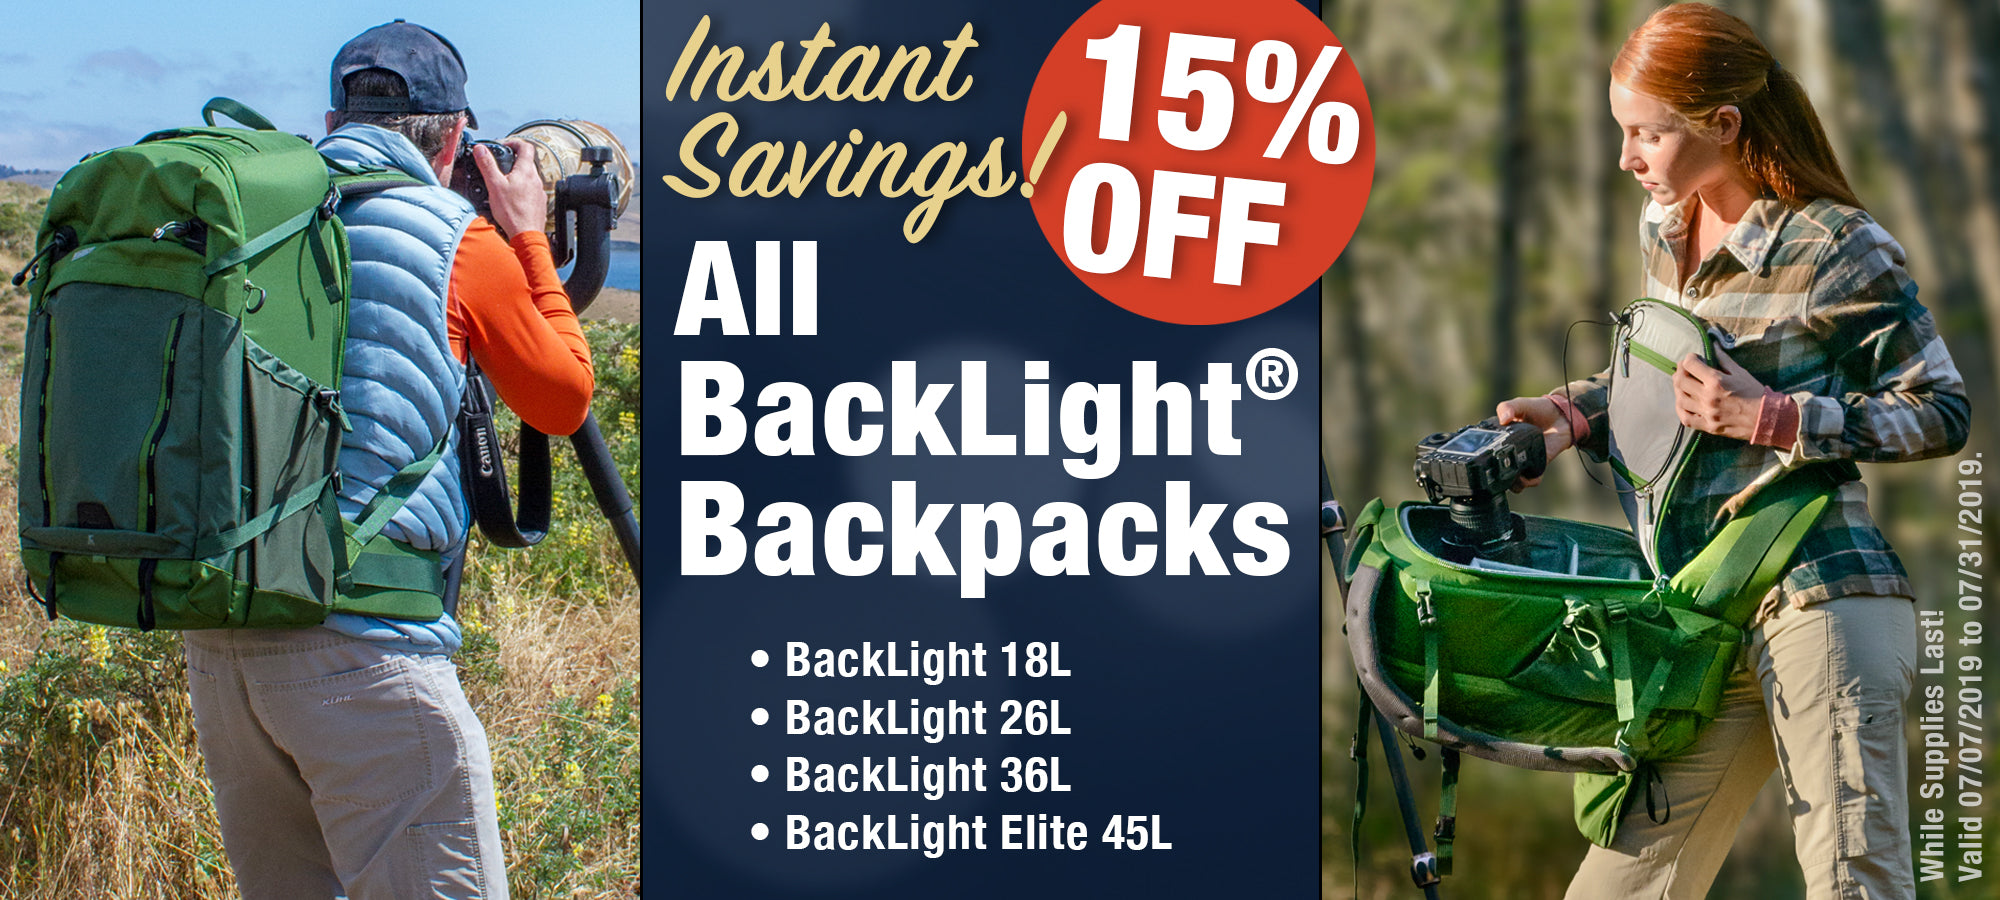 15% off Backlights!